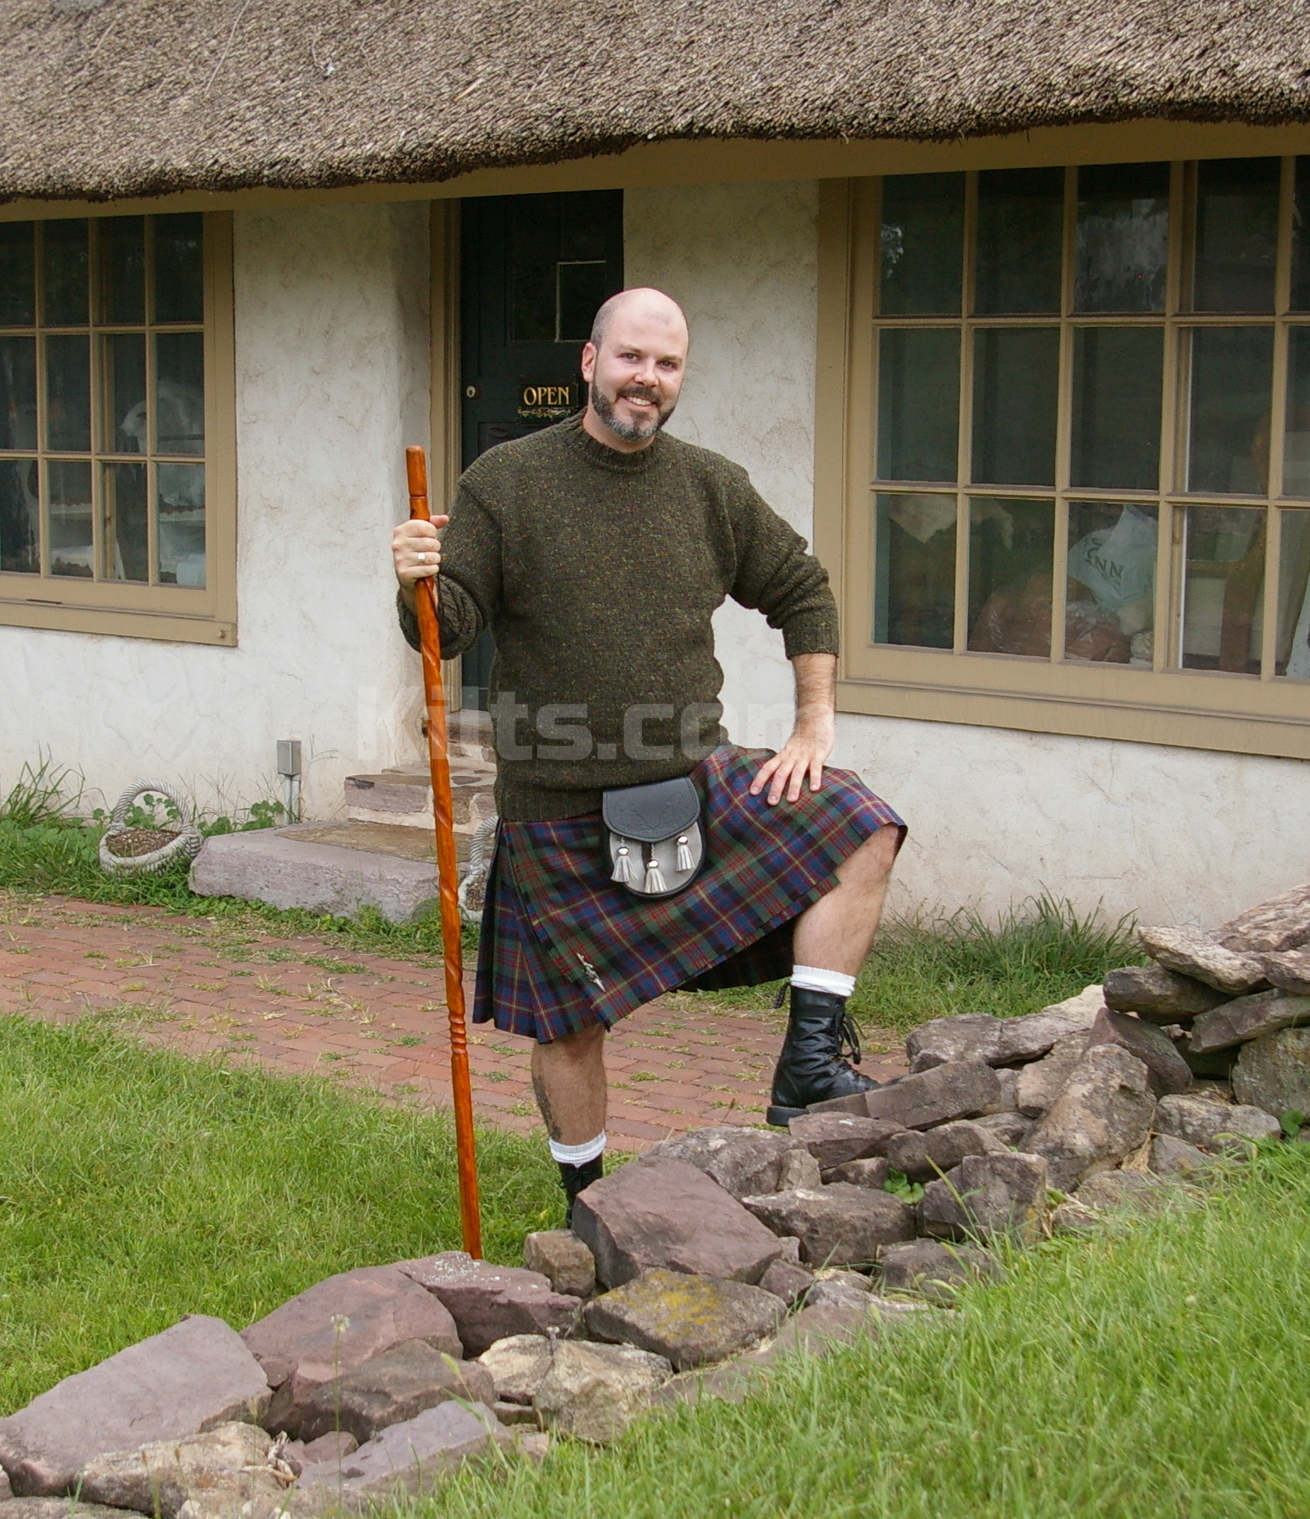 4508a41361f 5 Yard Kilt - Formal Kilts for Men - Scottish Kilts - Kilts.com